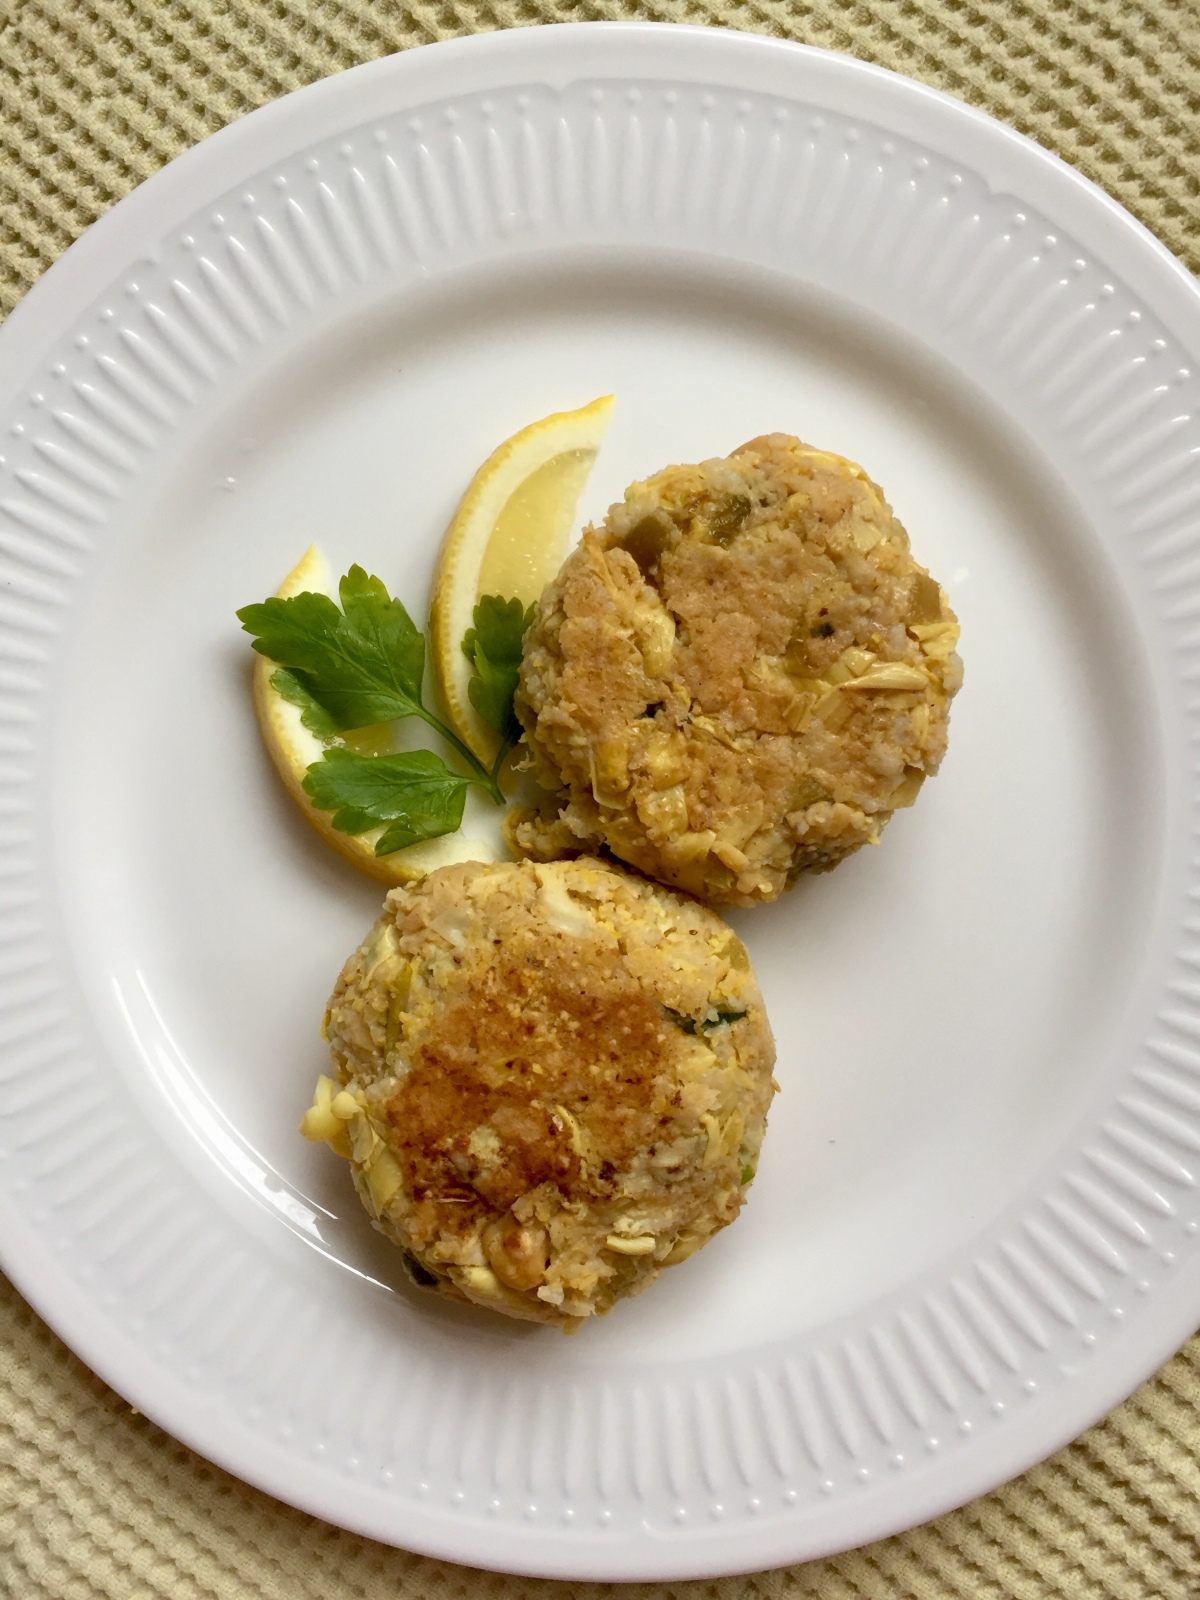 Fish-like Cakes with Chickpeas and Artichoke Hearts